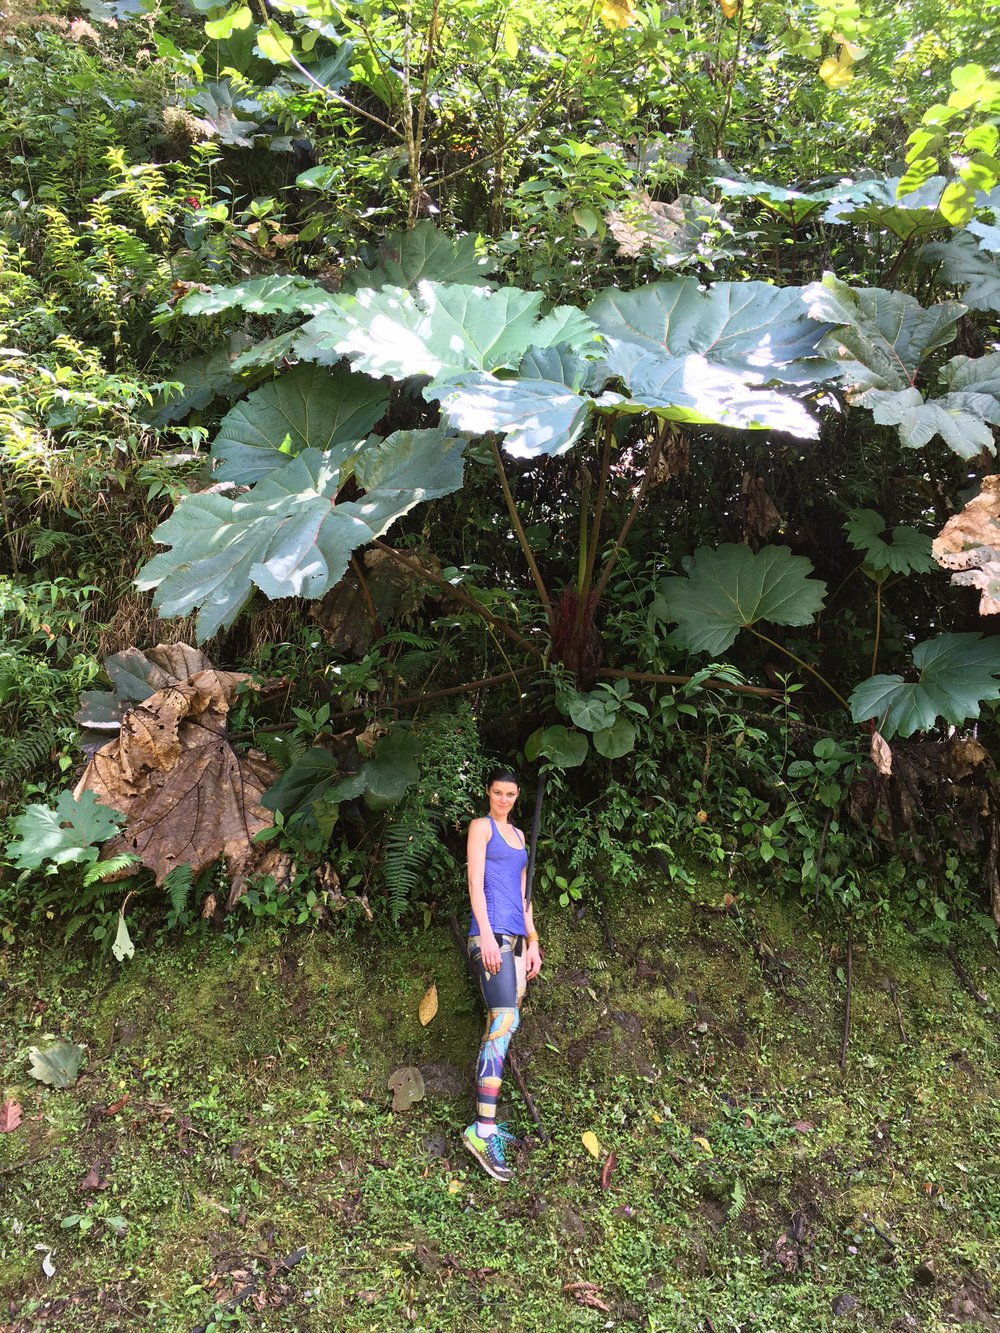 My parents grew rhubarb in our backyard, and as a kid, I'd love pulling up the bitter stalks, noshing on them raw, and hiding myself under the large leaves, which is why it was so cool to see rhubarb's relative,  Gunnera insignis , or the aptly named Poor Man's Umbrella in Costa Rica, which is an impressively large broad-leaved plant often found at the edges of rainforests. Though it was the dry season here in Tapantí, the leaves would have served as a perfect natural umbrella from rain or sun!